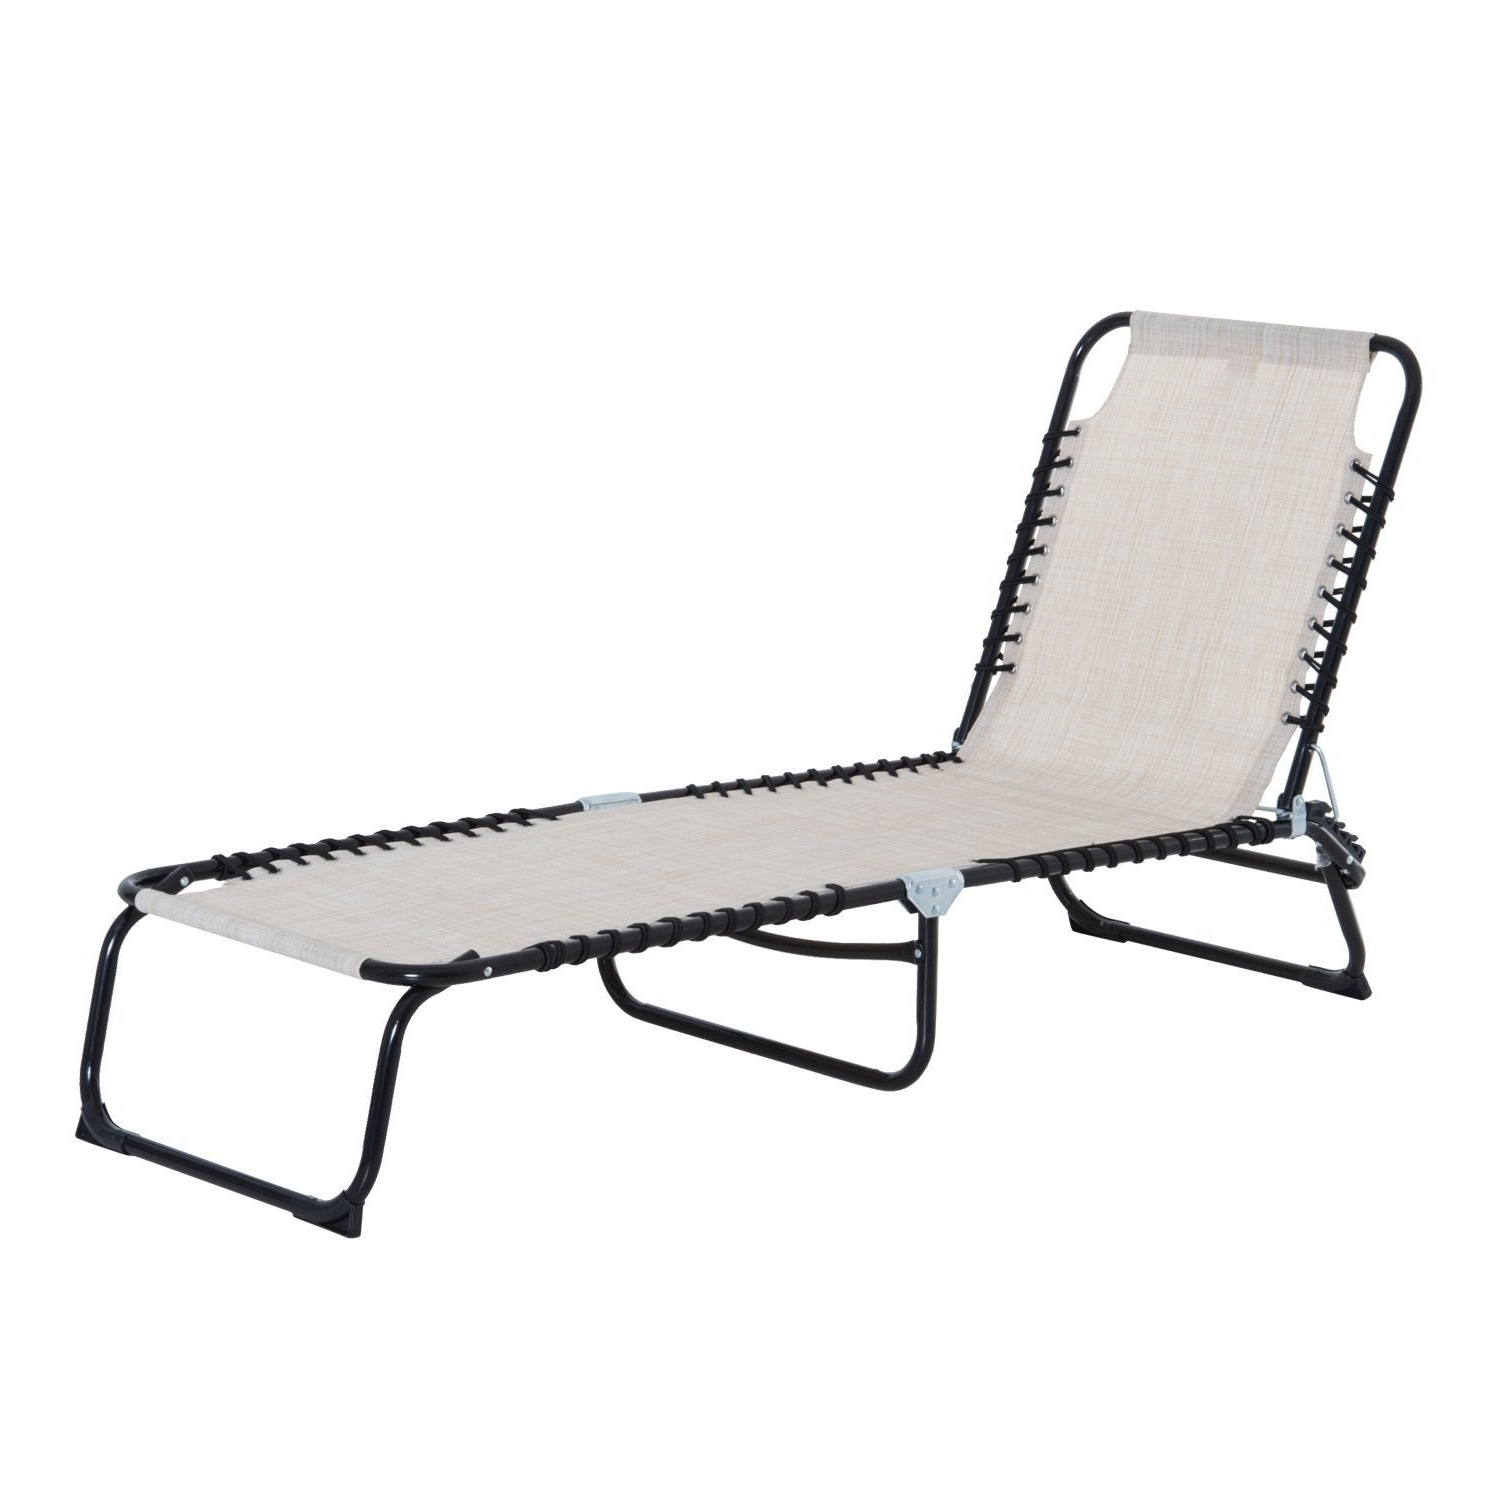 Outsunny 3 Position Portable Reclining Beach Chaise Lounge Folding Chair  Outdoor Patio – Cream White Inside Current Reclining Sling Chaise Lounges (View 13 of 25)